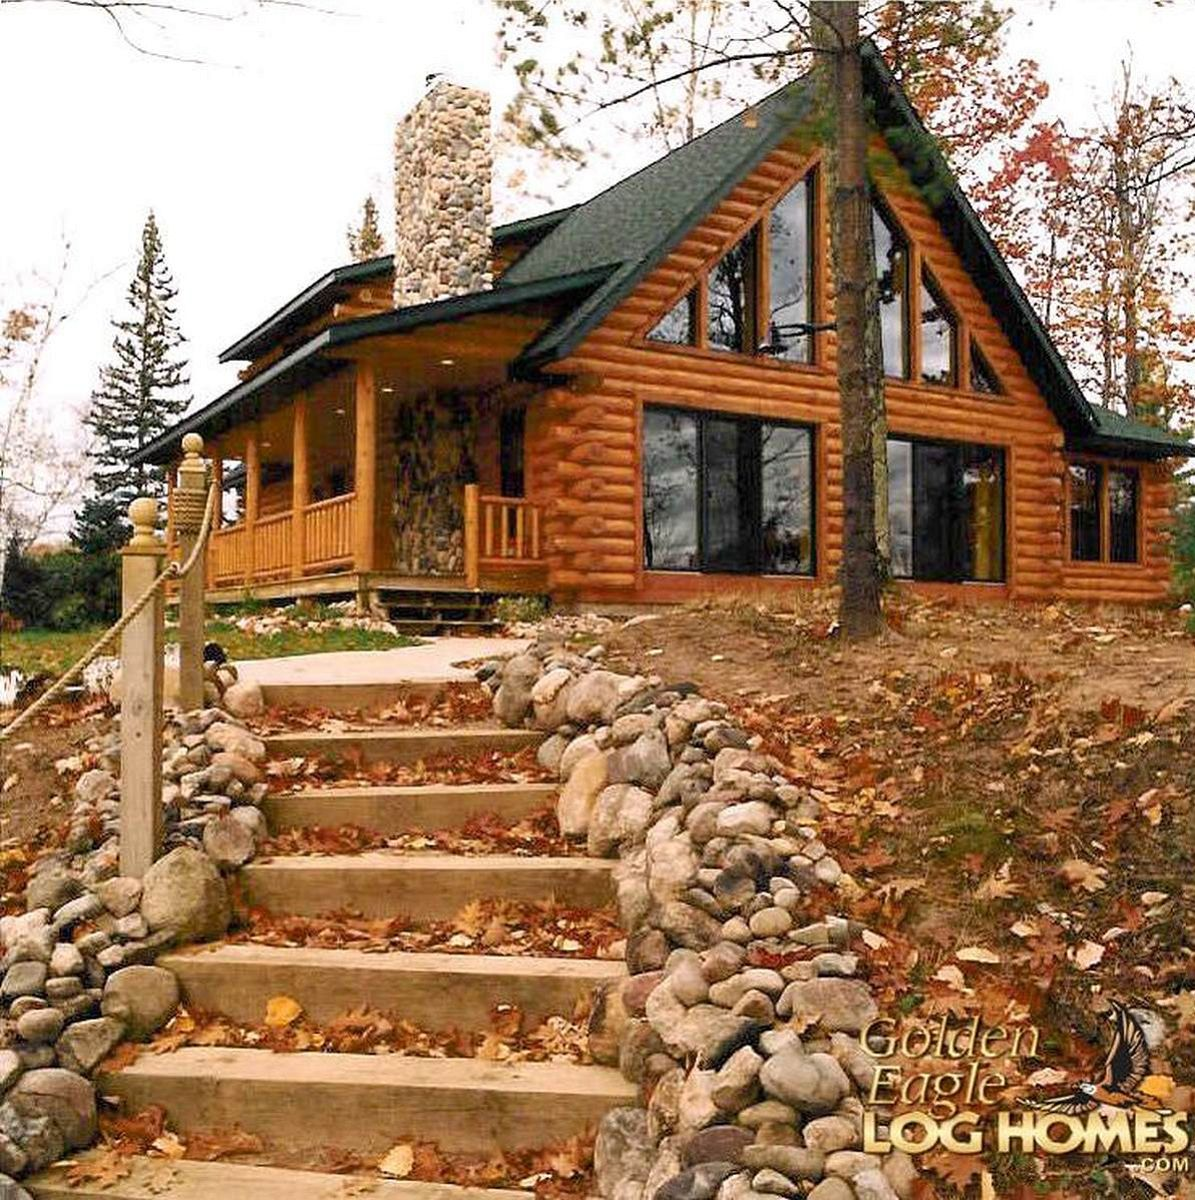 Log home by golden eagle log homes golden eagle log logs for Stone and log homes